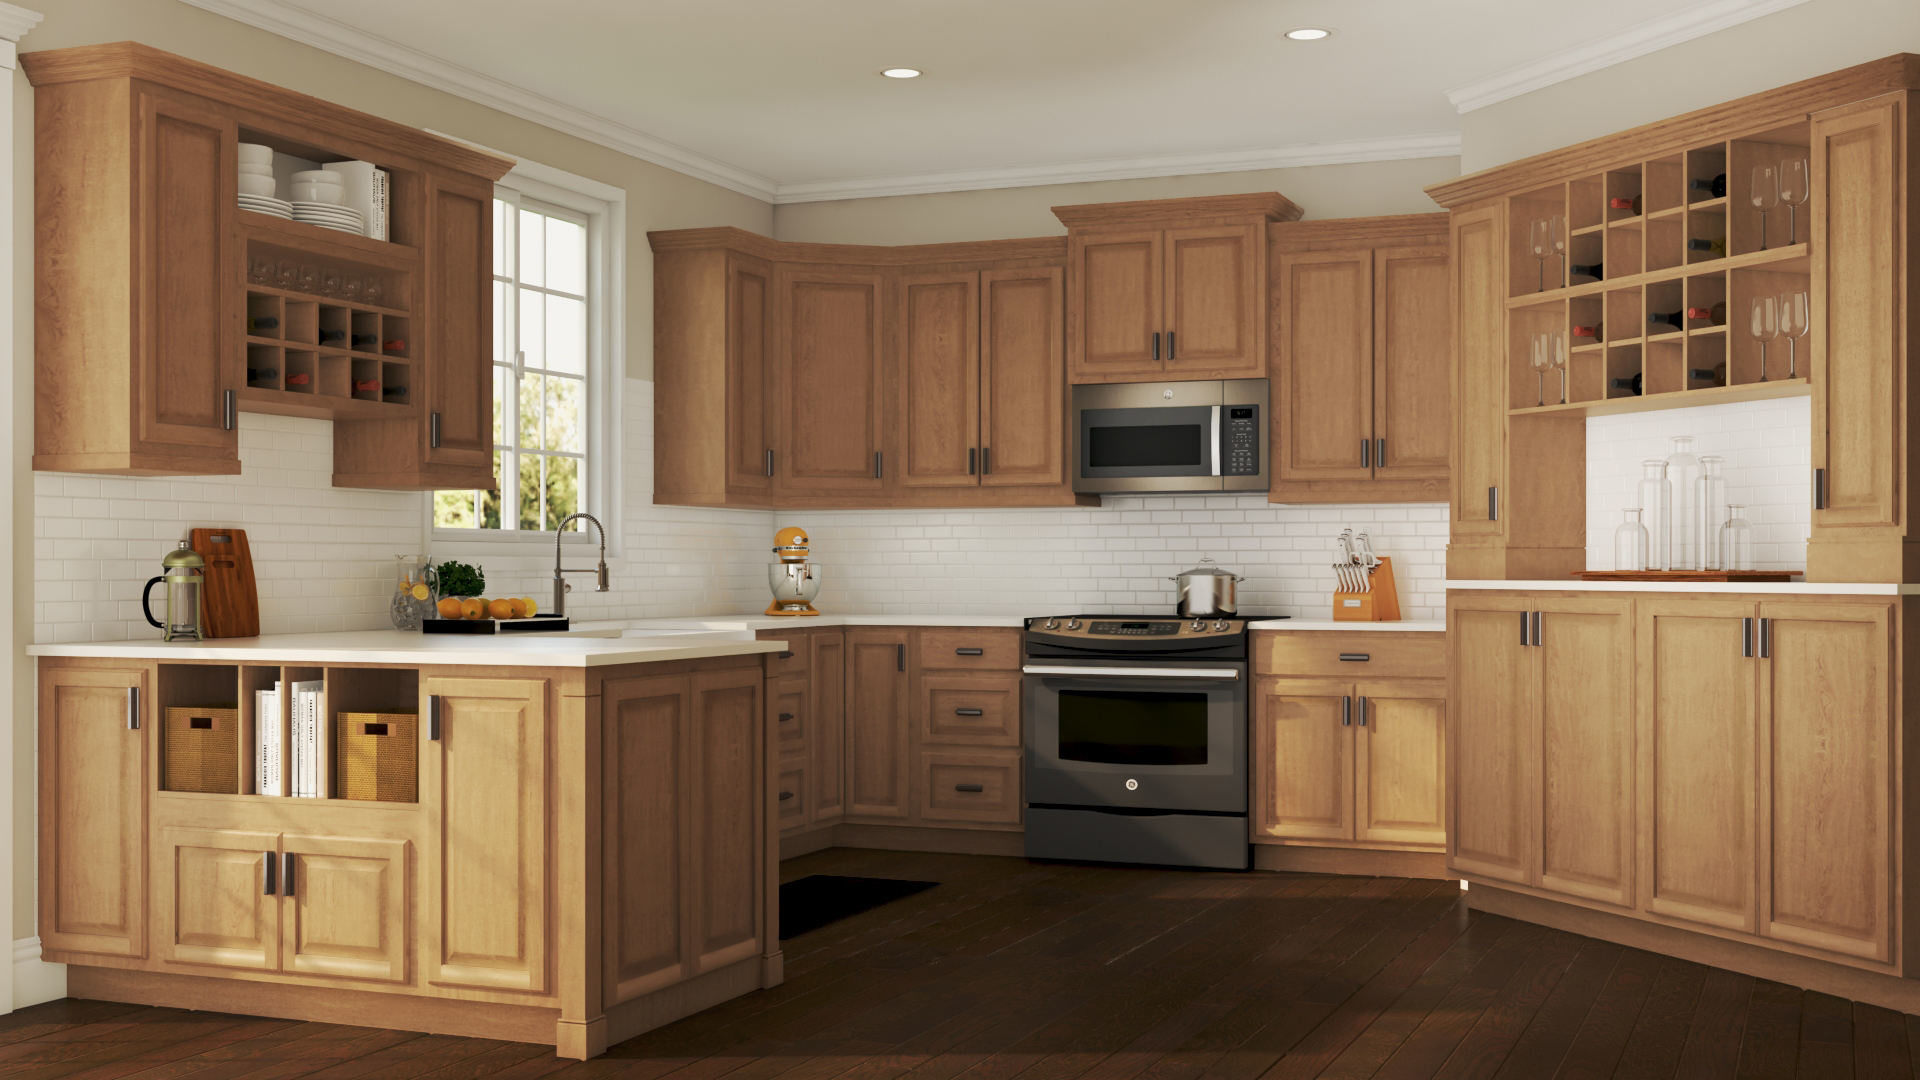 Image of: Hampton Medium Oak Coordinating Cabinet Hardware Kitchen The Home Depot